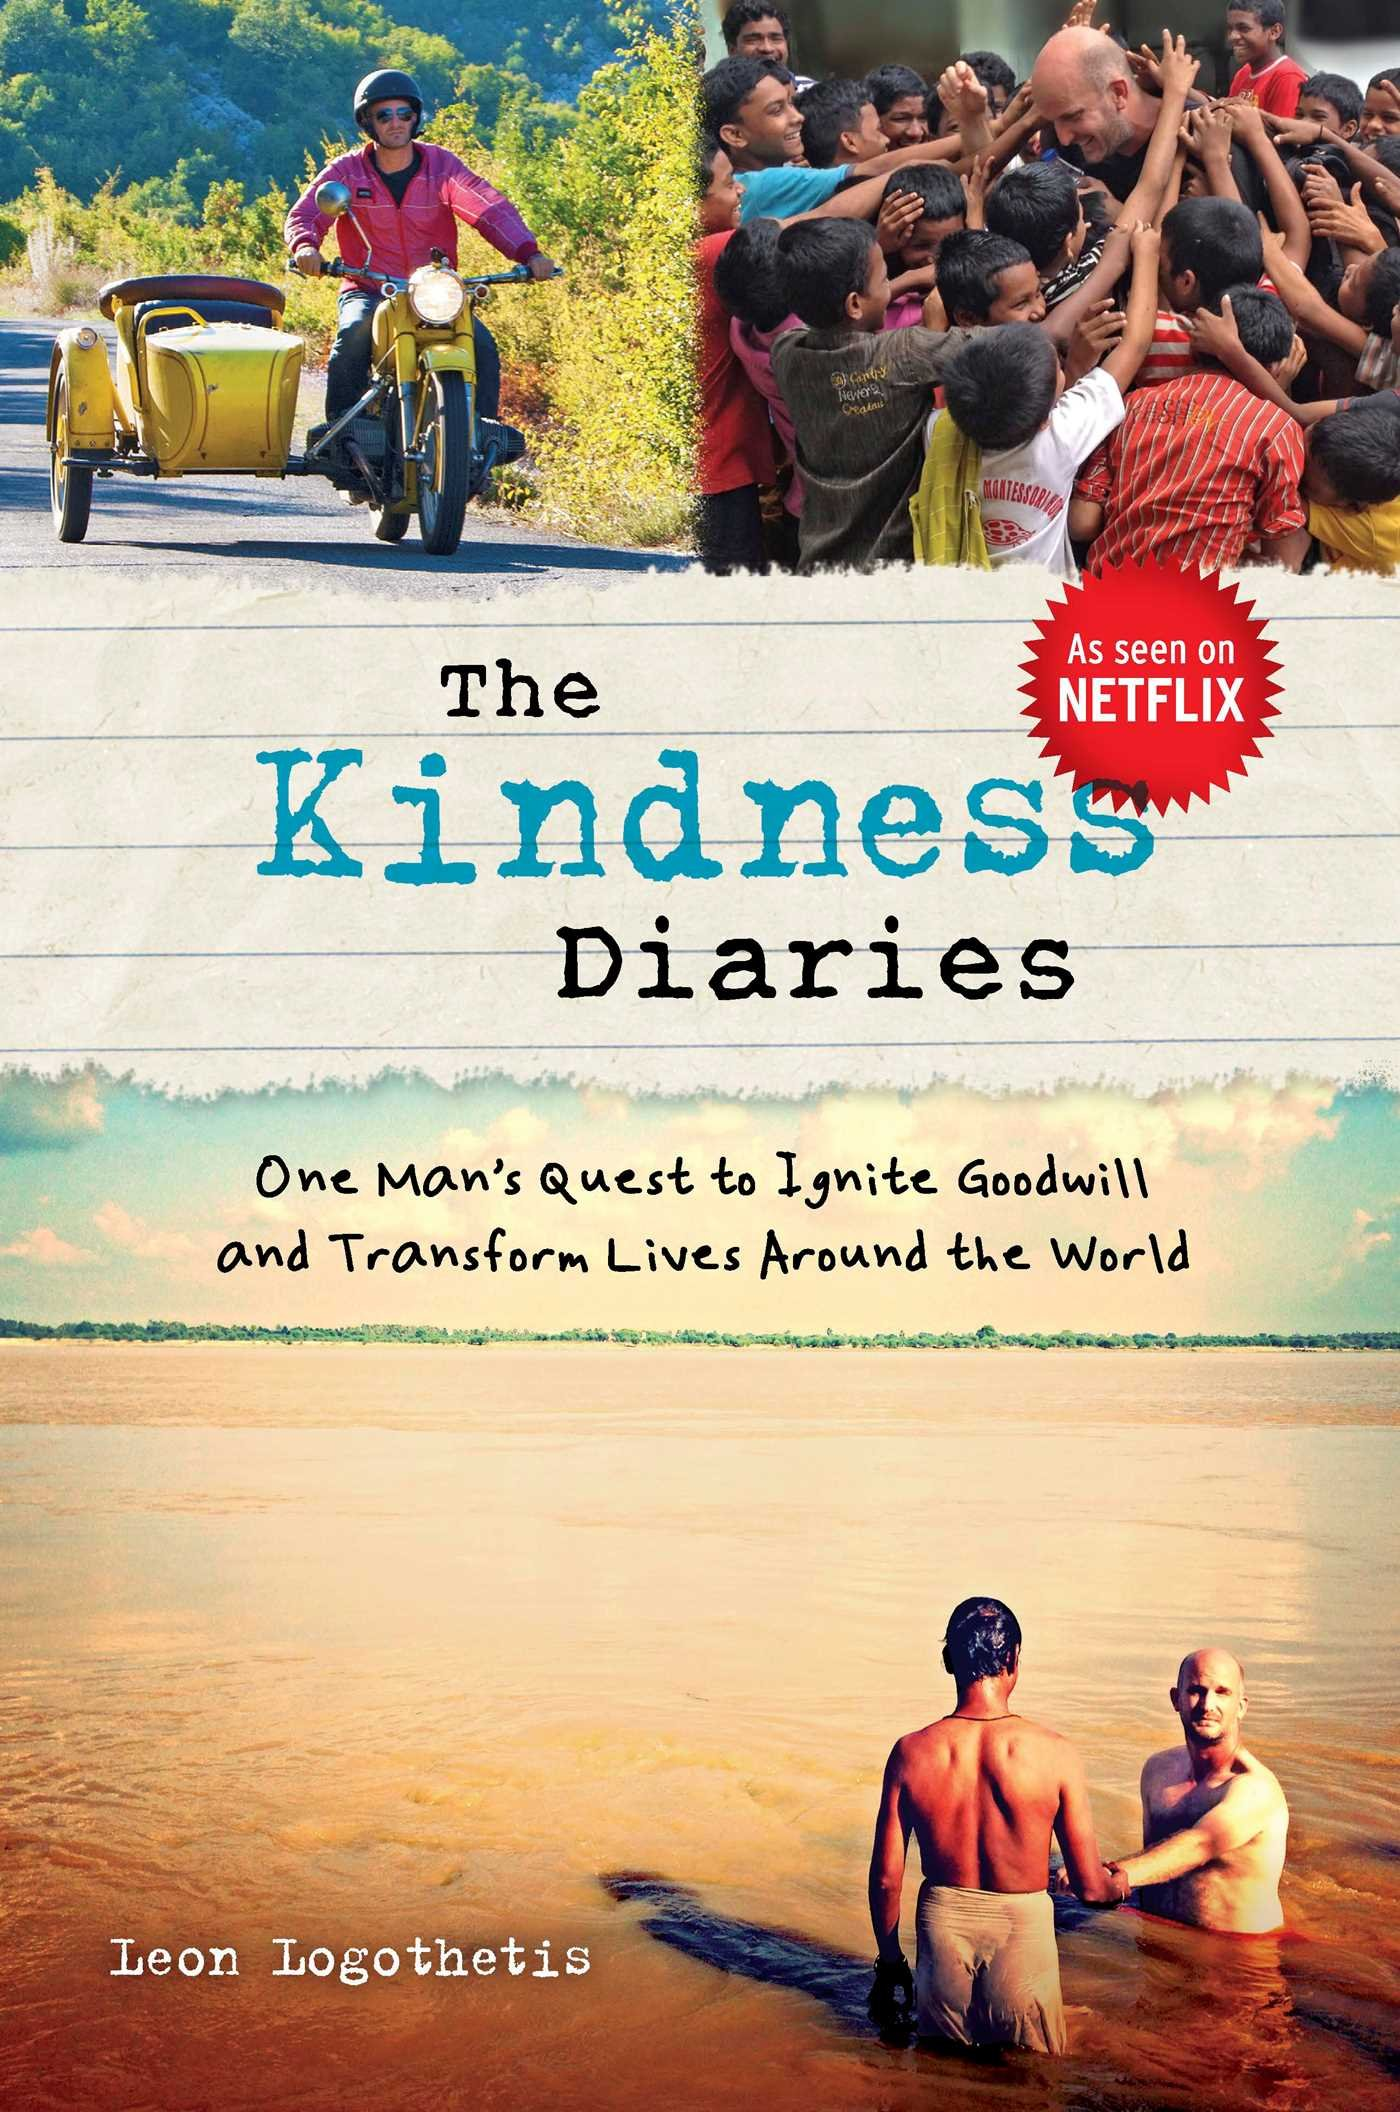 The Kindness Diaries: One Man's Quest to Ignite Goodwill and Transform Lives Around the World: Logothetis, Leon: 9781621452690: Amazon.com: Books